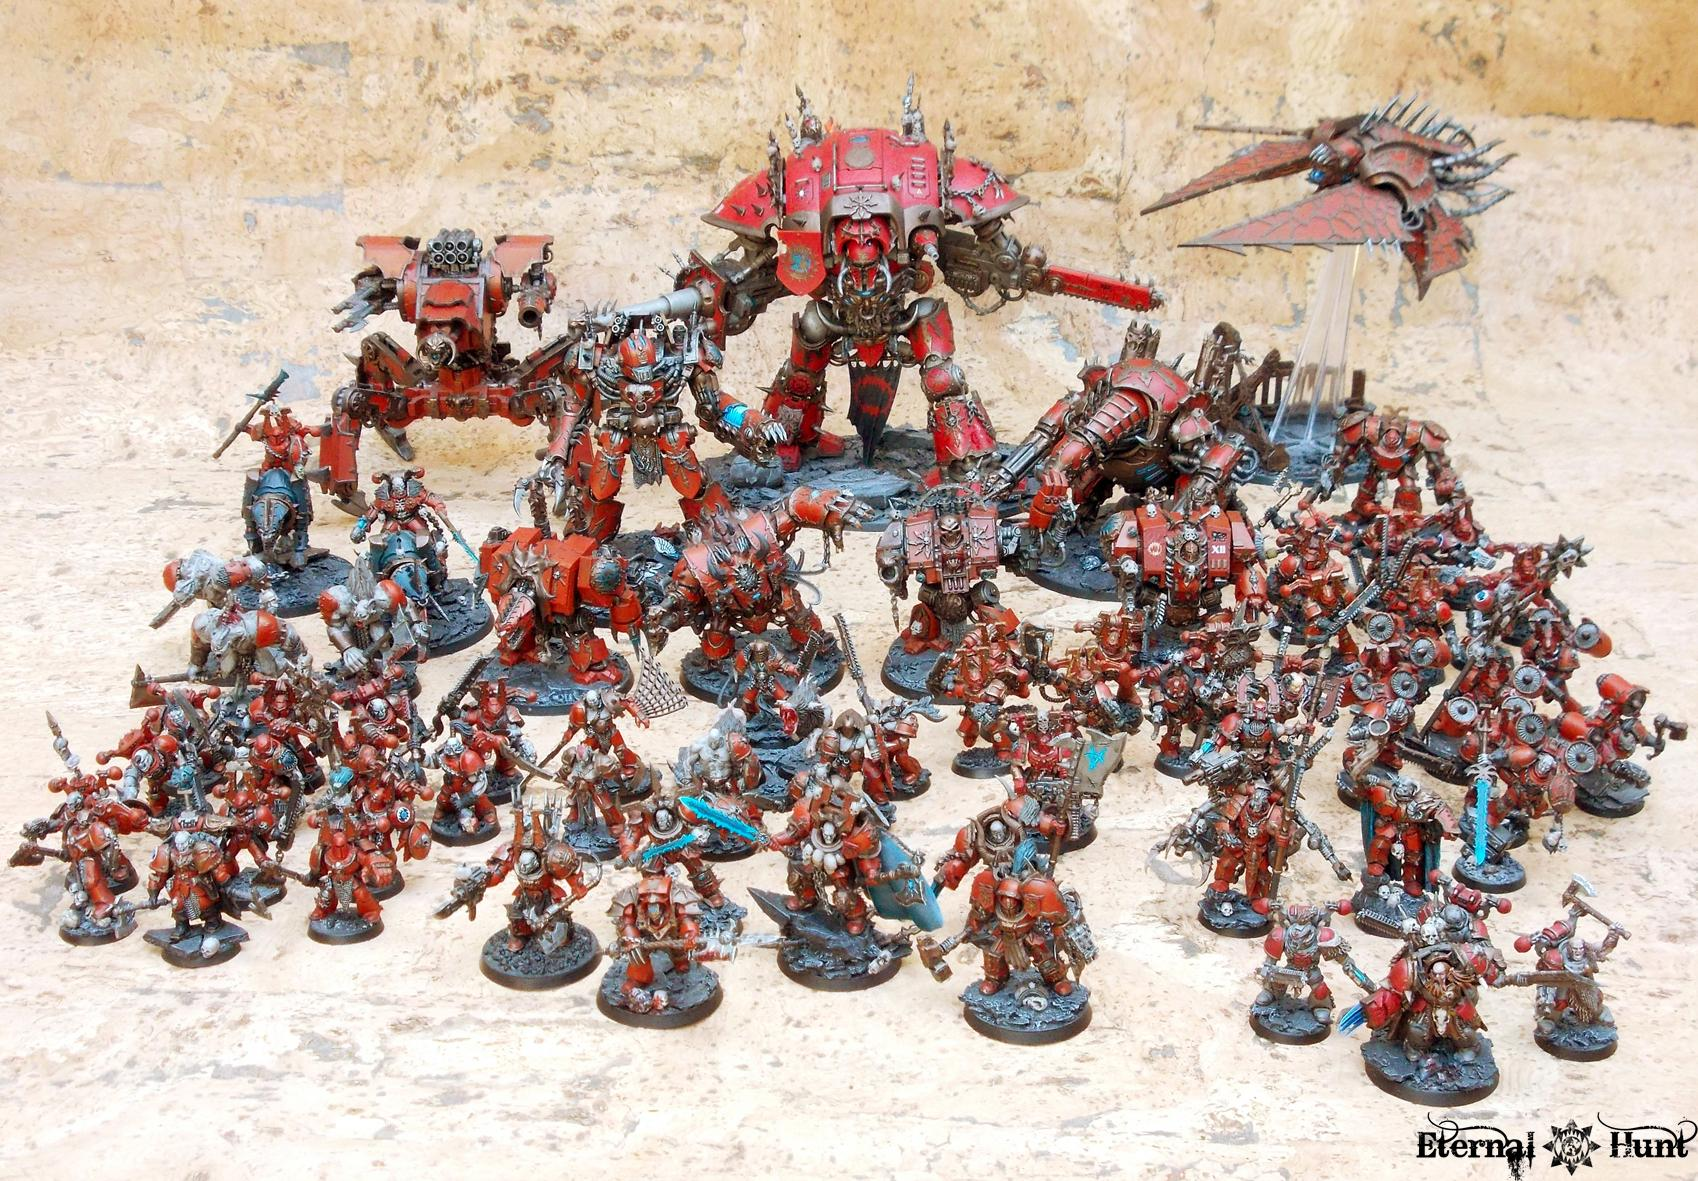 4th Assault Company, Army Showcase, Berserkers, Chaos, Chaos Space Marines, Khorne, Khorne's Eternal Hunt, Warhammer 40,000, World Eaters, Xii Legion